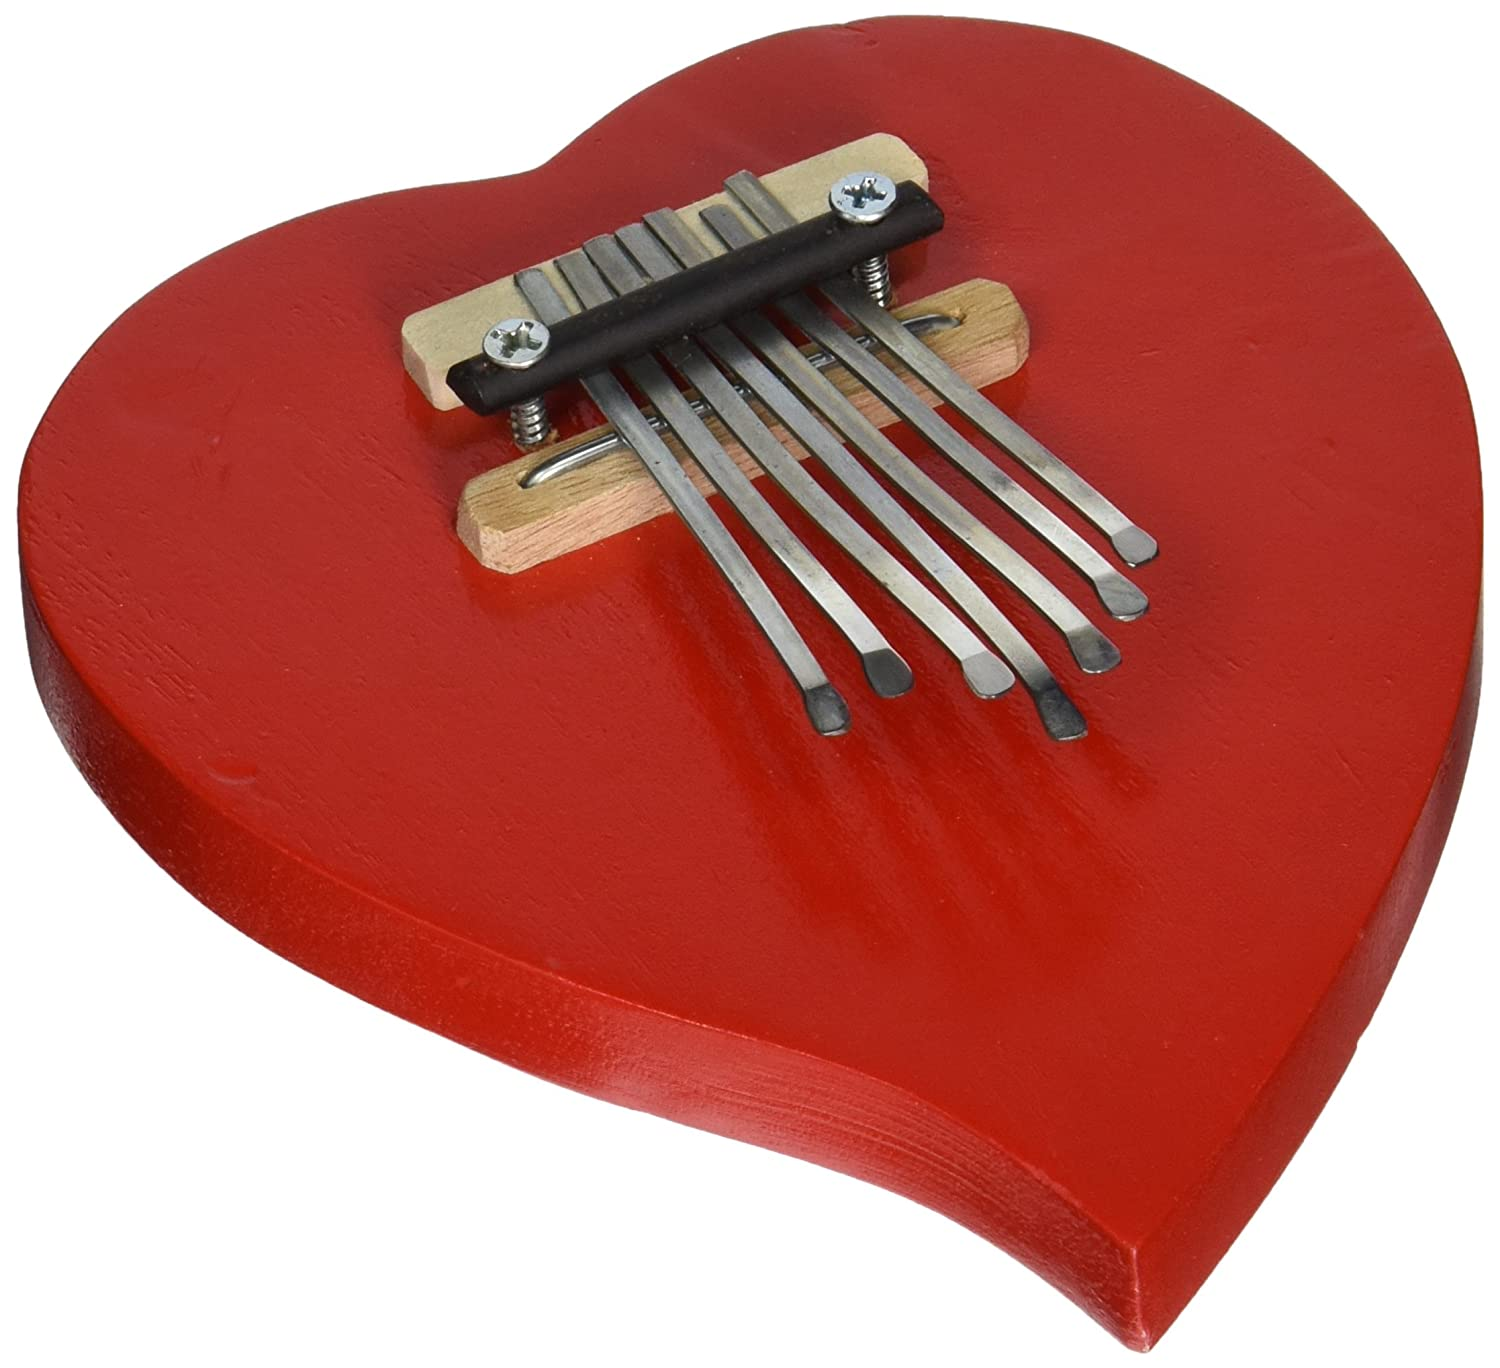 X8 Drums & Percussion Red Heart Kalimba Thumb Piano X8-HRT-KLB